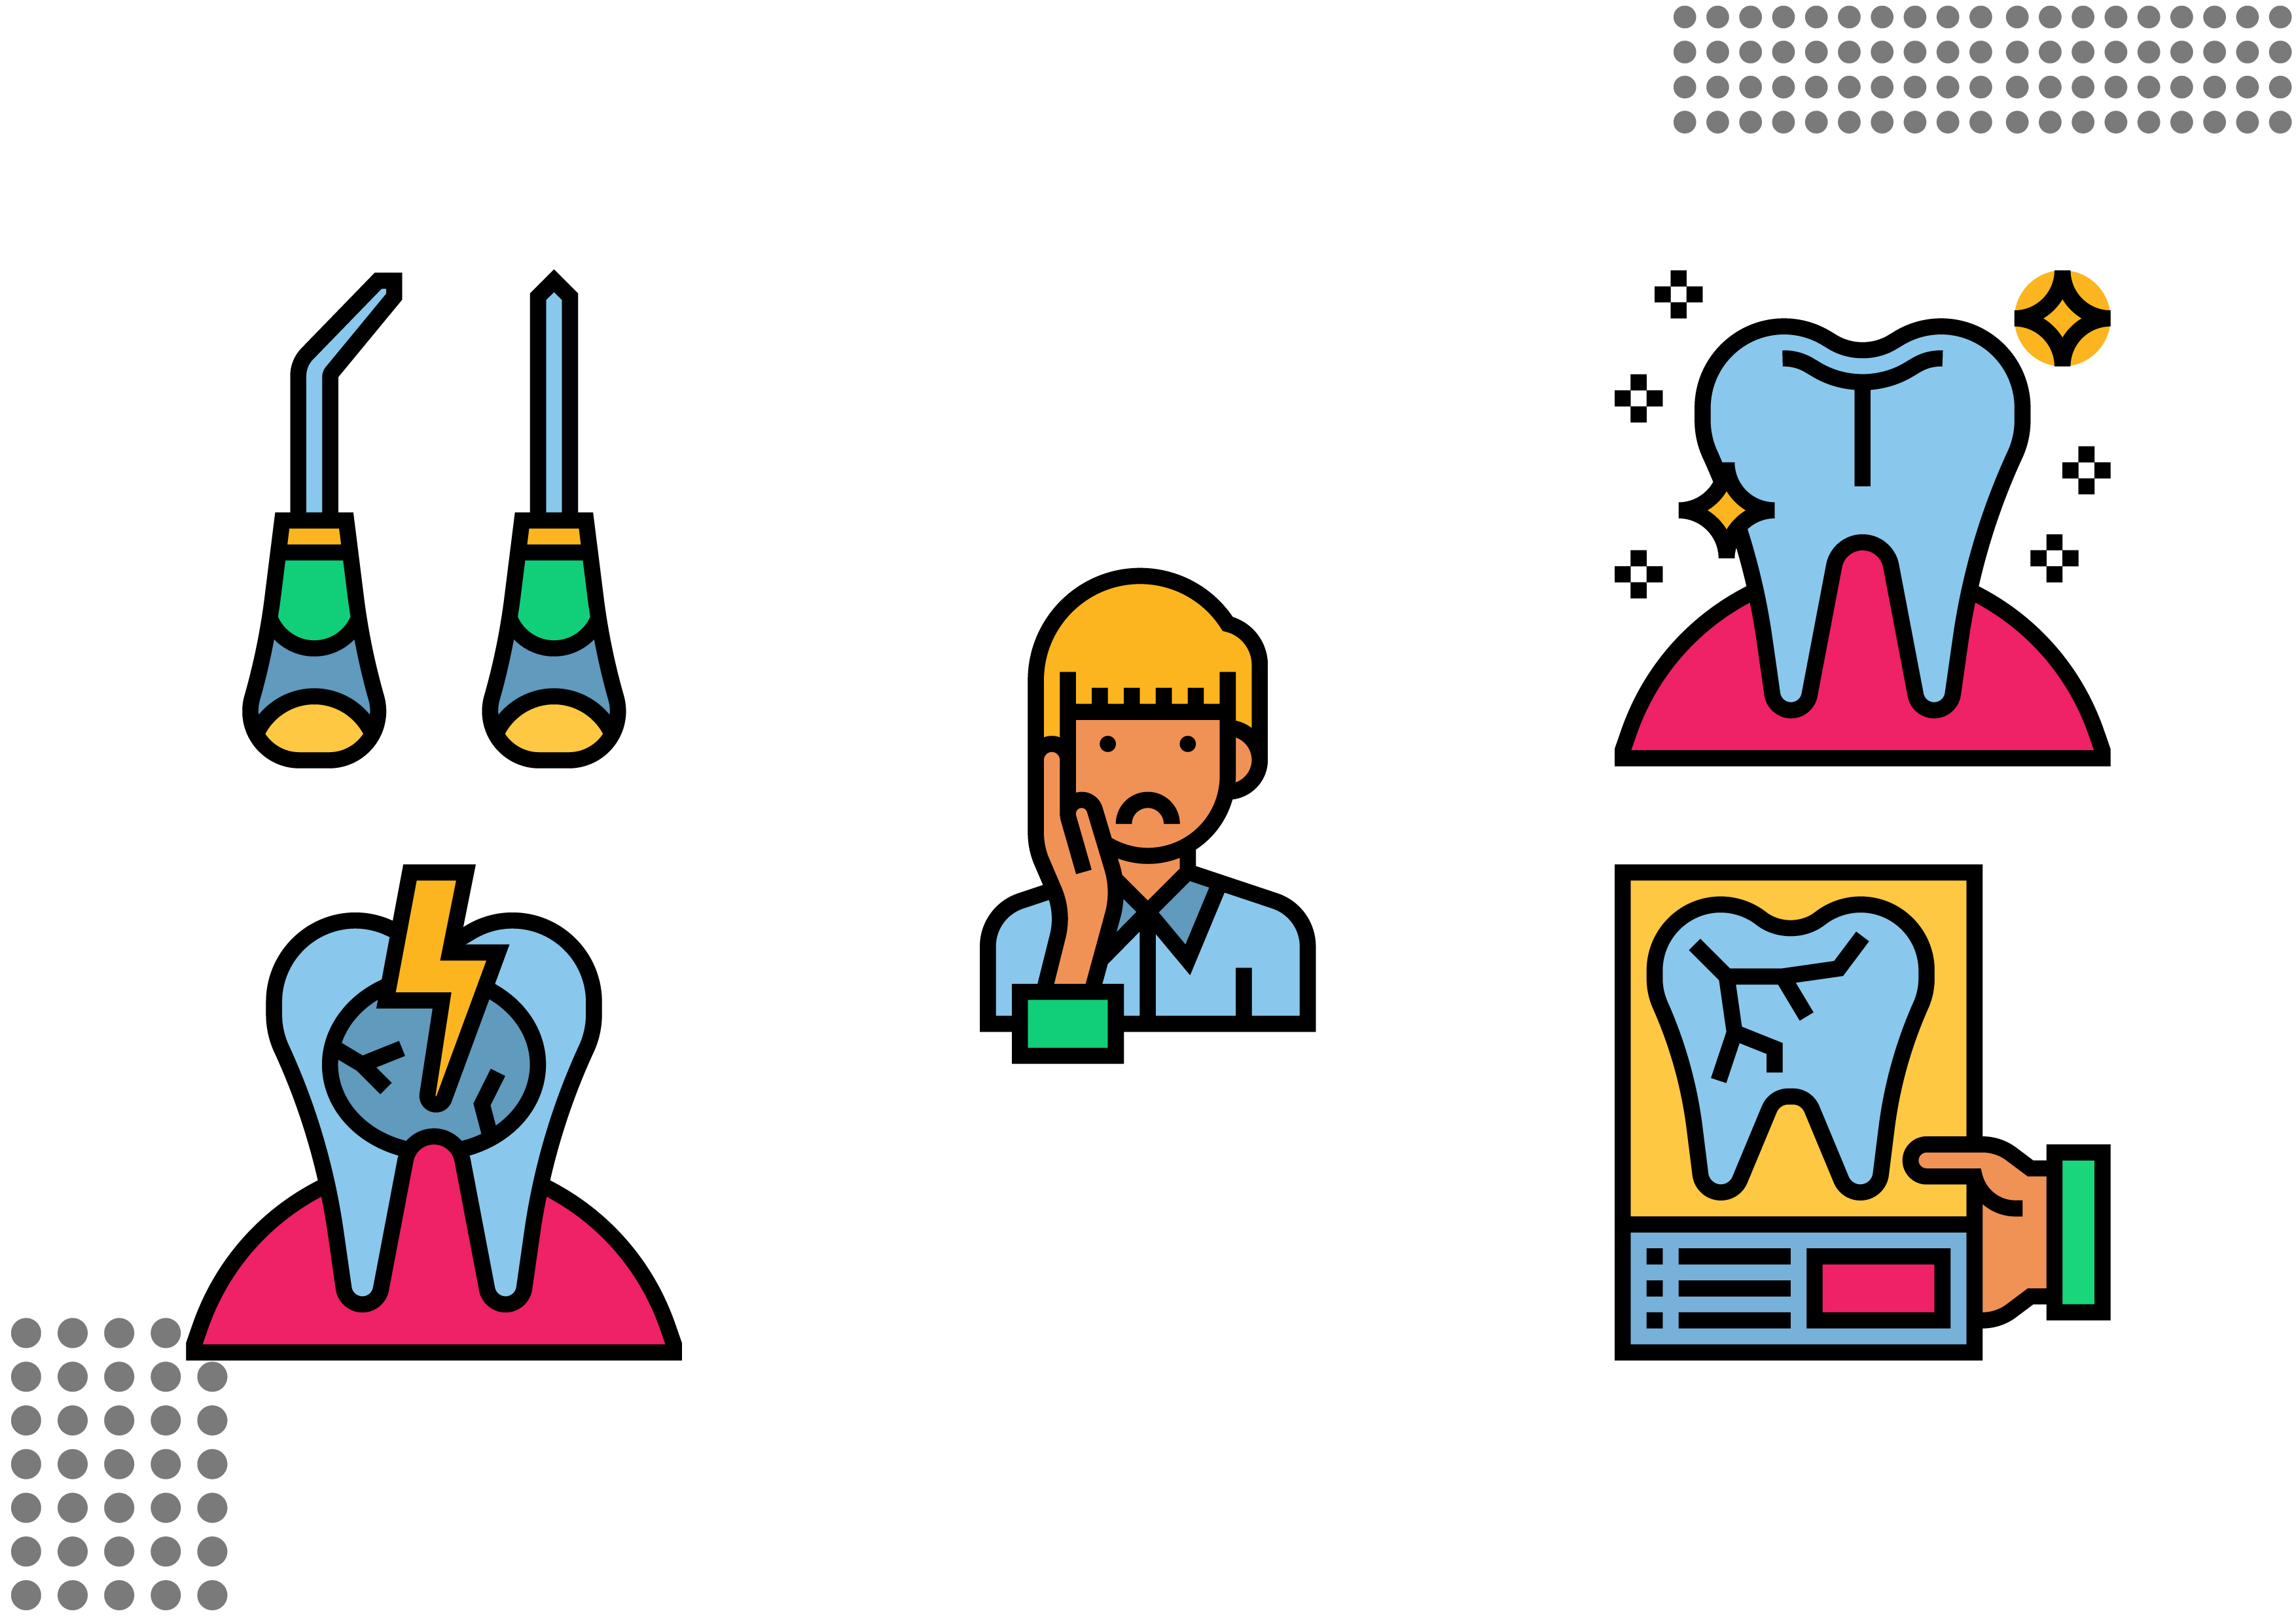 Download Free Dental Graphic By Cool Coolpkm3 Creative Fabrica for Cricut Explore, Silhouette and other cutting machines.